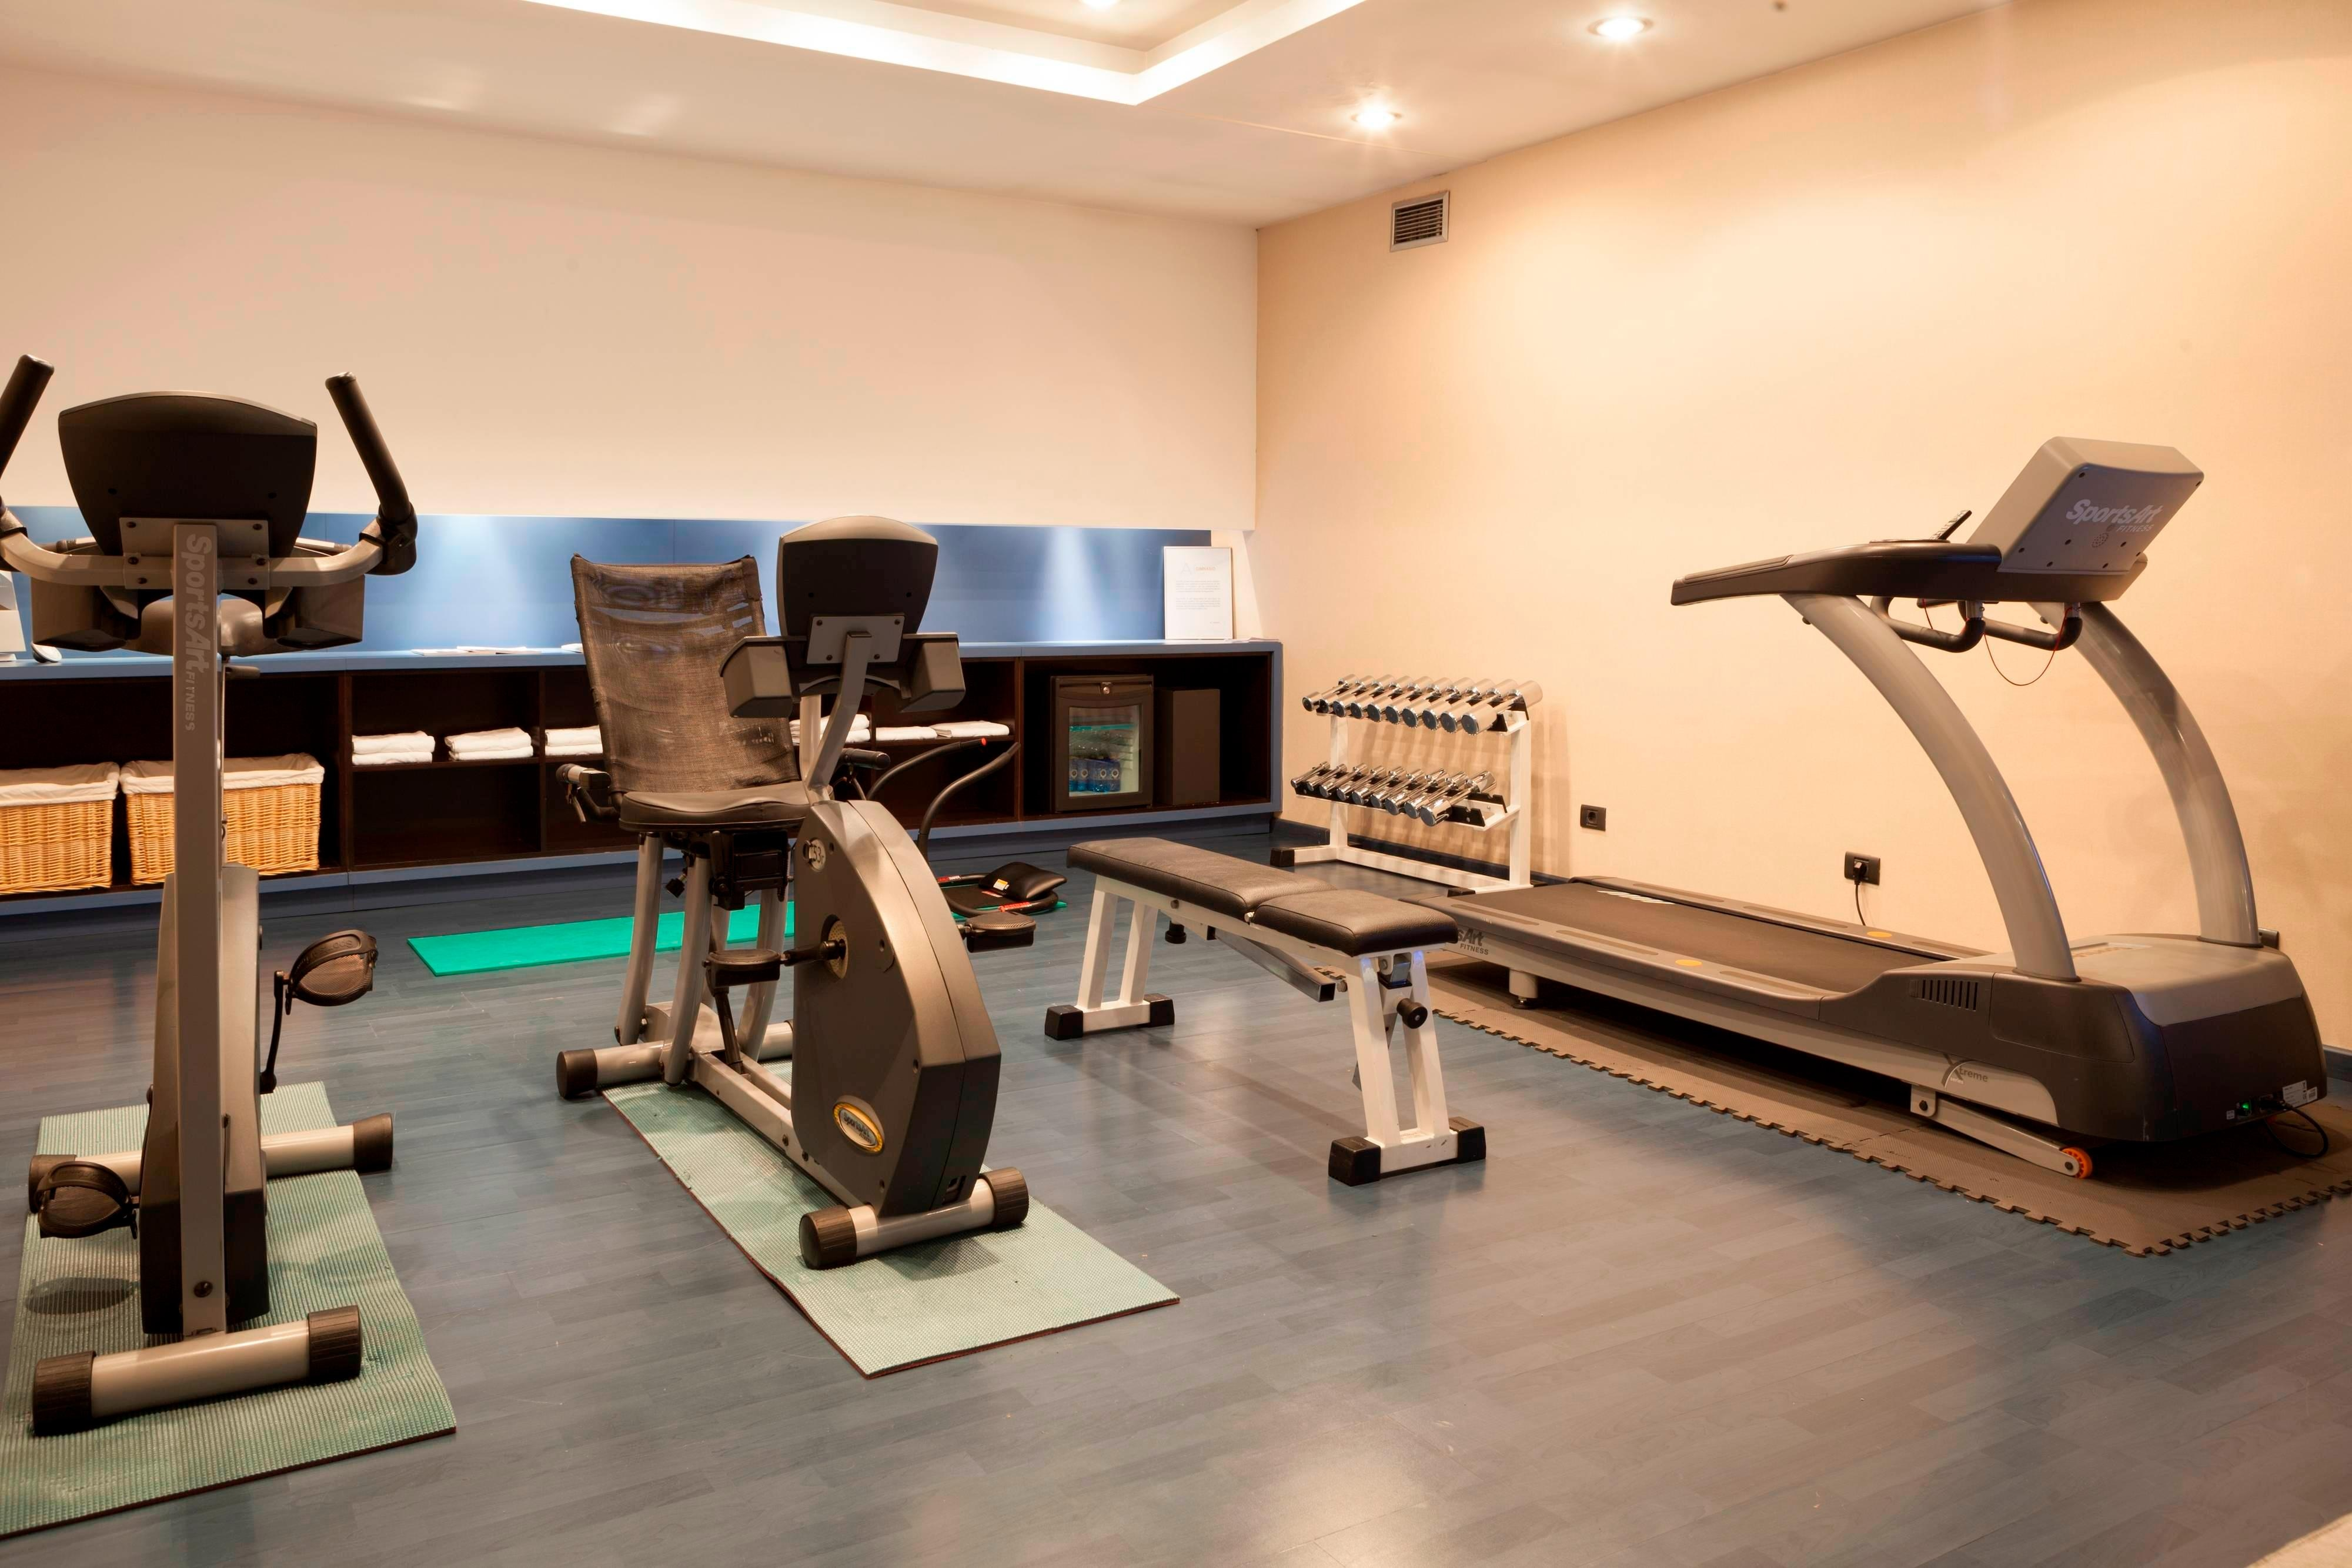 Pamplona hotel fitness center